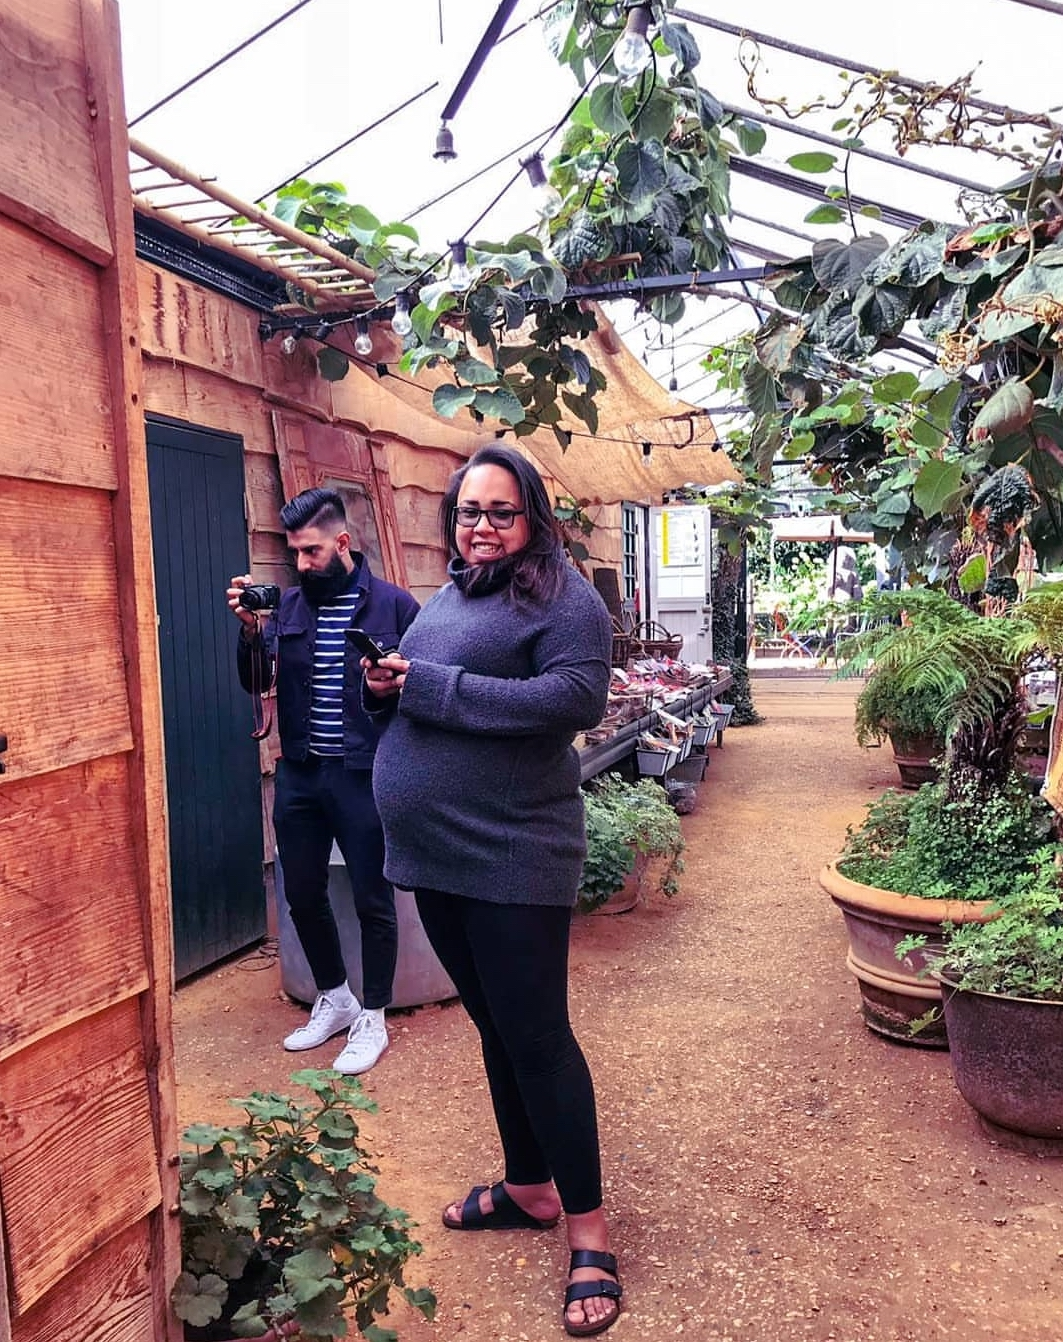 PREGNANT | 9 Months in the Making - Petersham Nurseries, Petersham Nurseries, Pregnant, Pregnancy, Pregnancy Announcement, Preggo, 9 Months Pregnant,Garson's Pick Your Own Farm, Garson's Farm Shop, Glad you got home before, Parenting, Motherhood, Parenting Blogger, Fay Simone